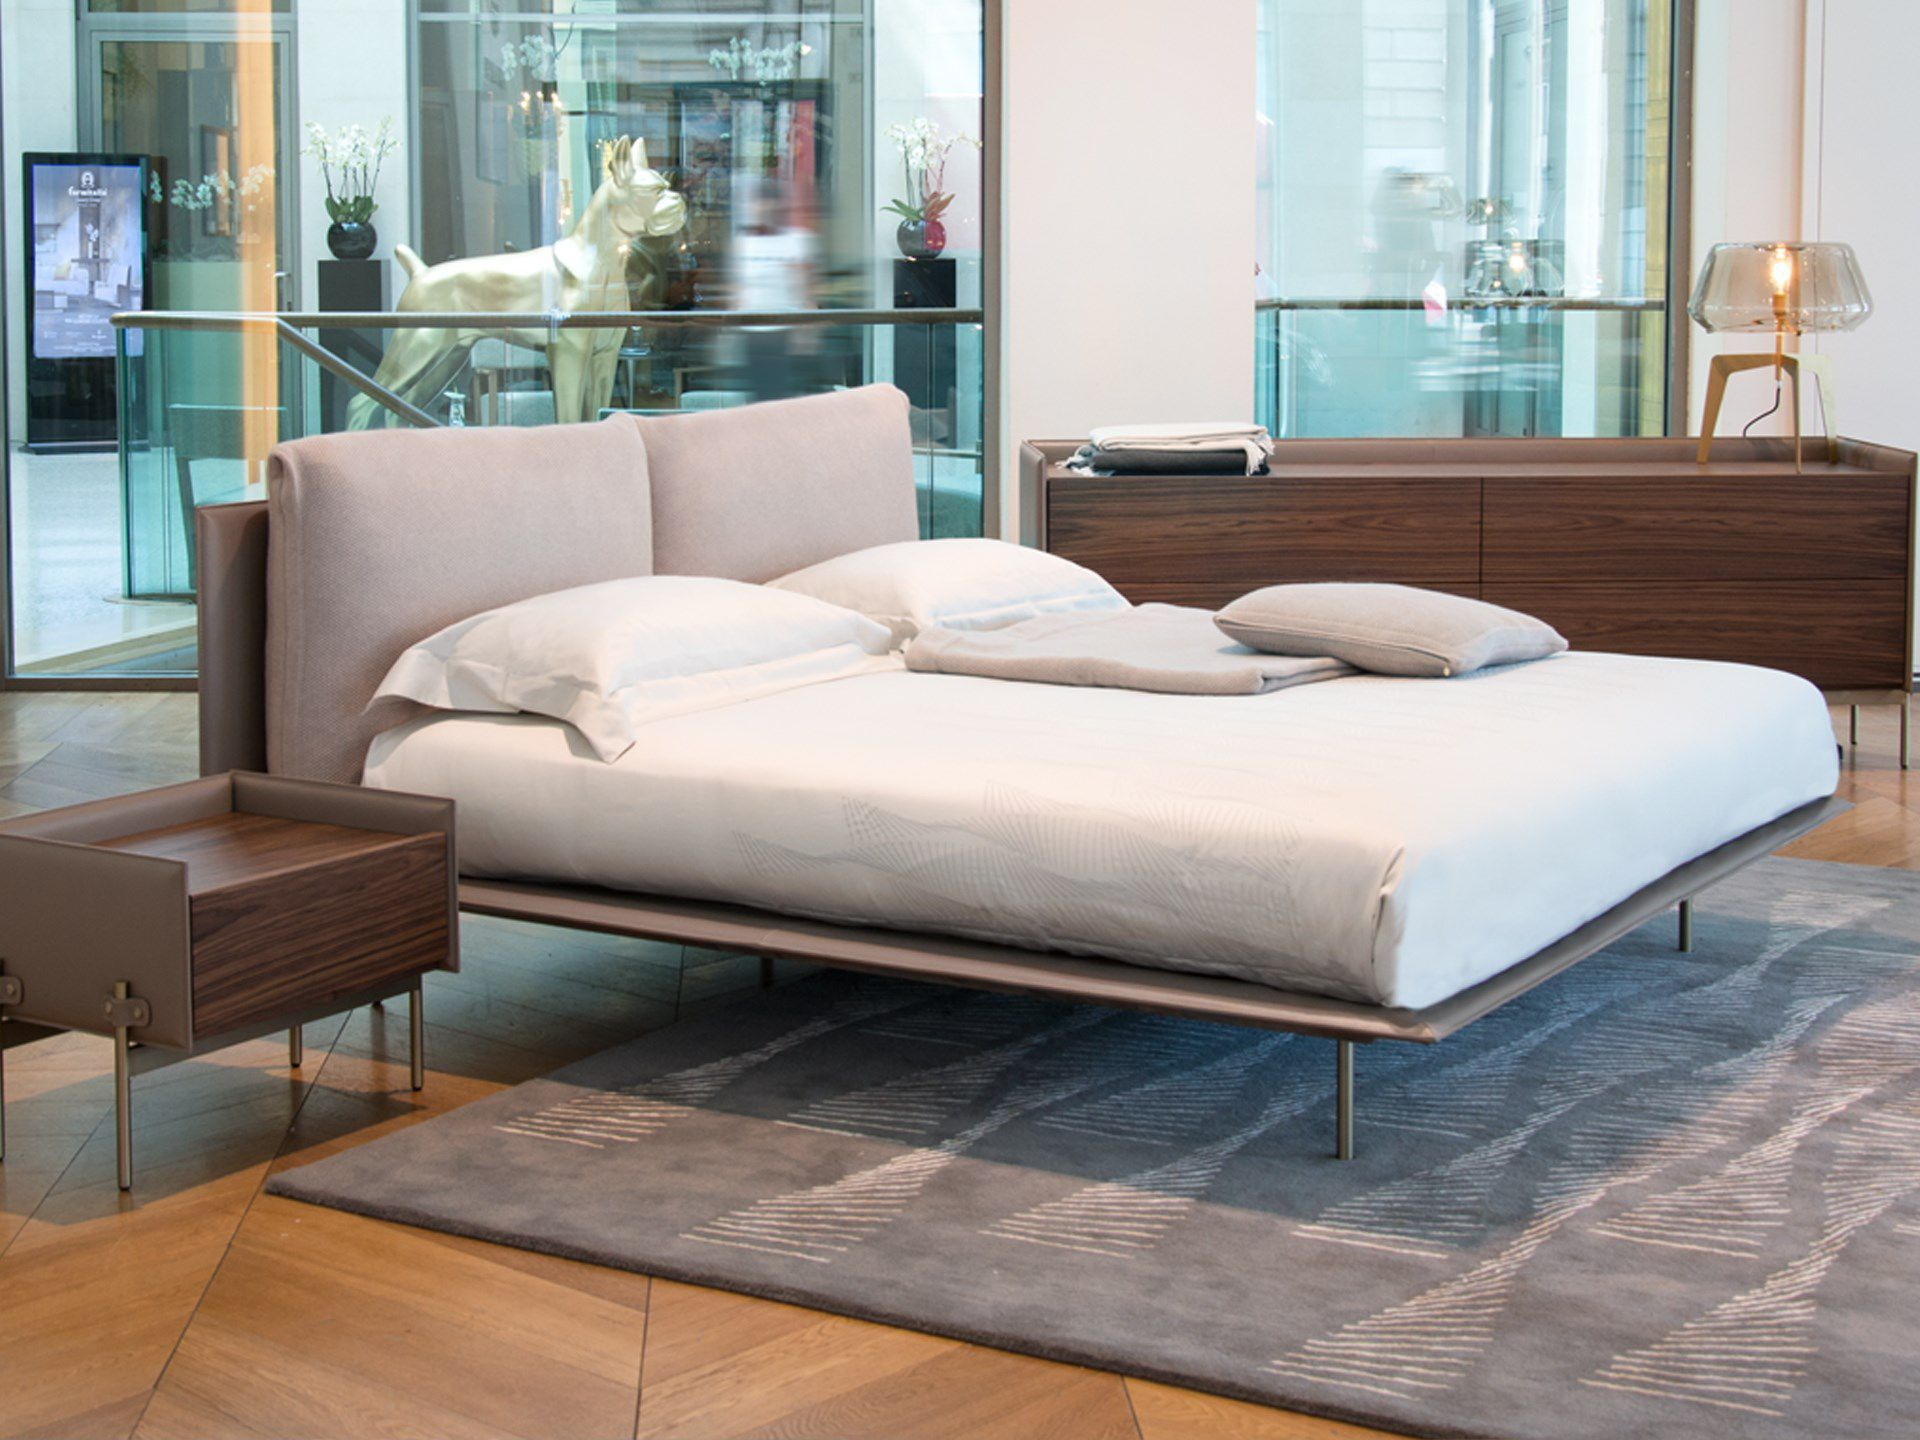 Double Bed V251 Aston Martin Contemporary Upholstered With Upholstered Headboard